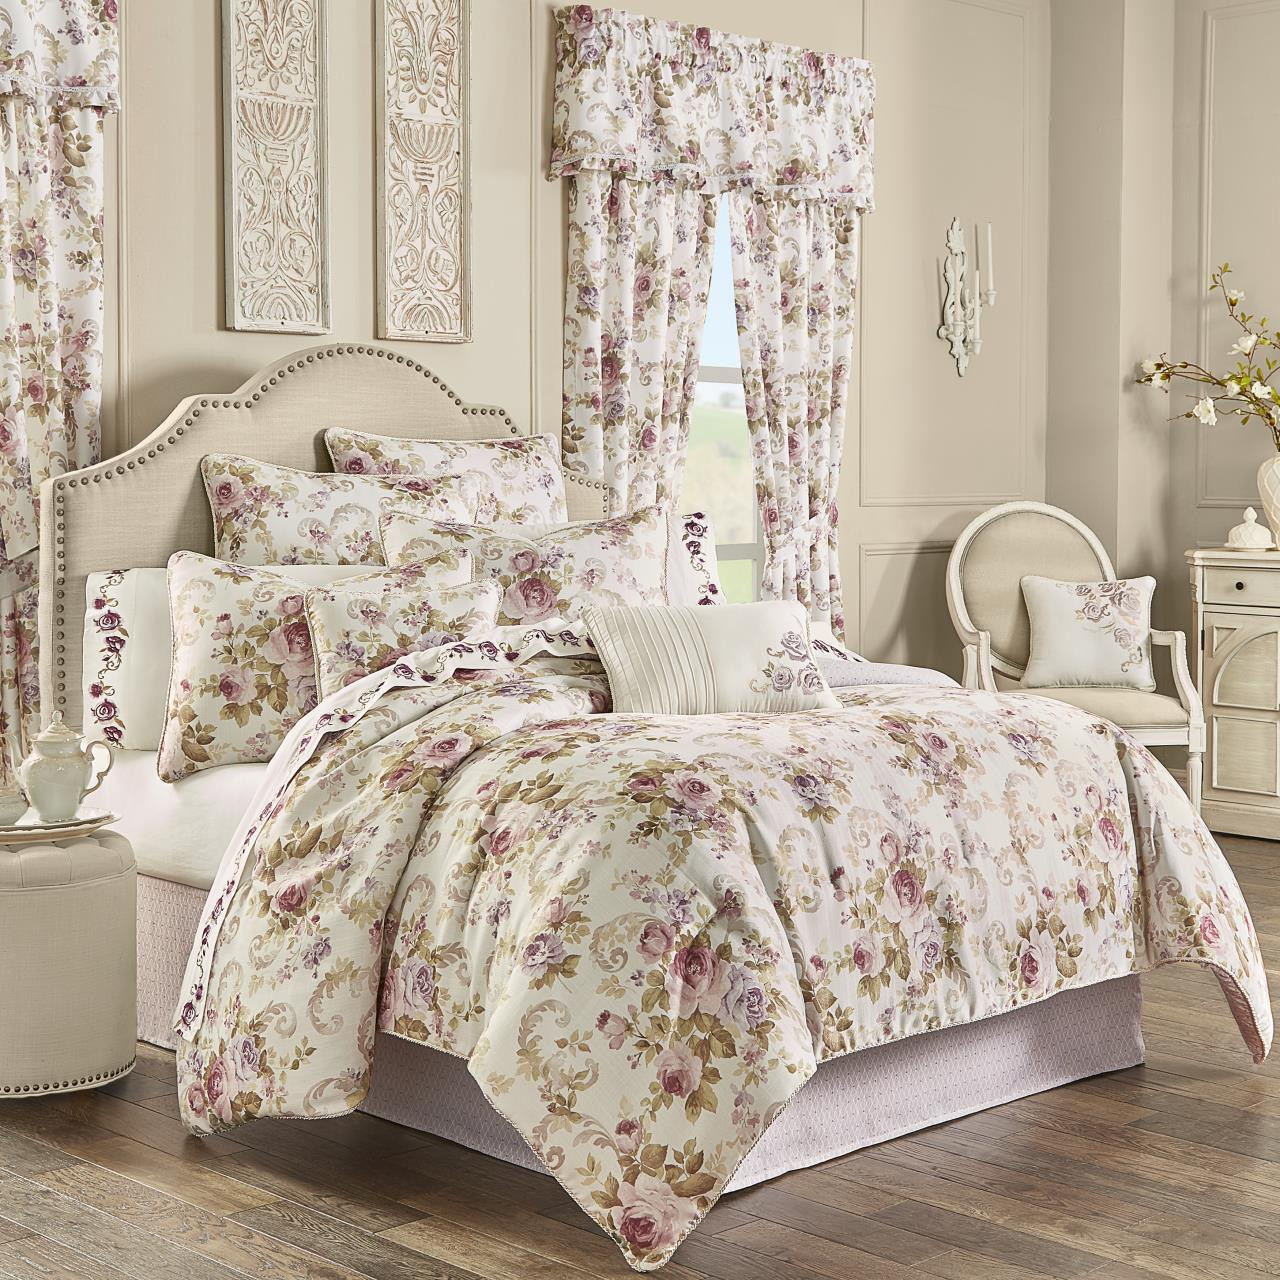 Chambord Lavender Bedding Collection -